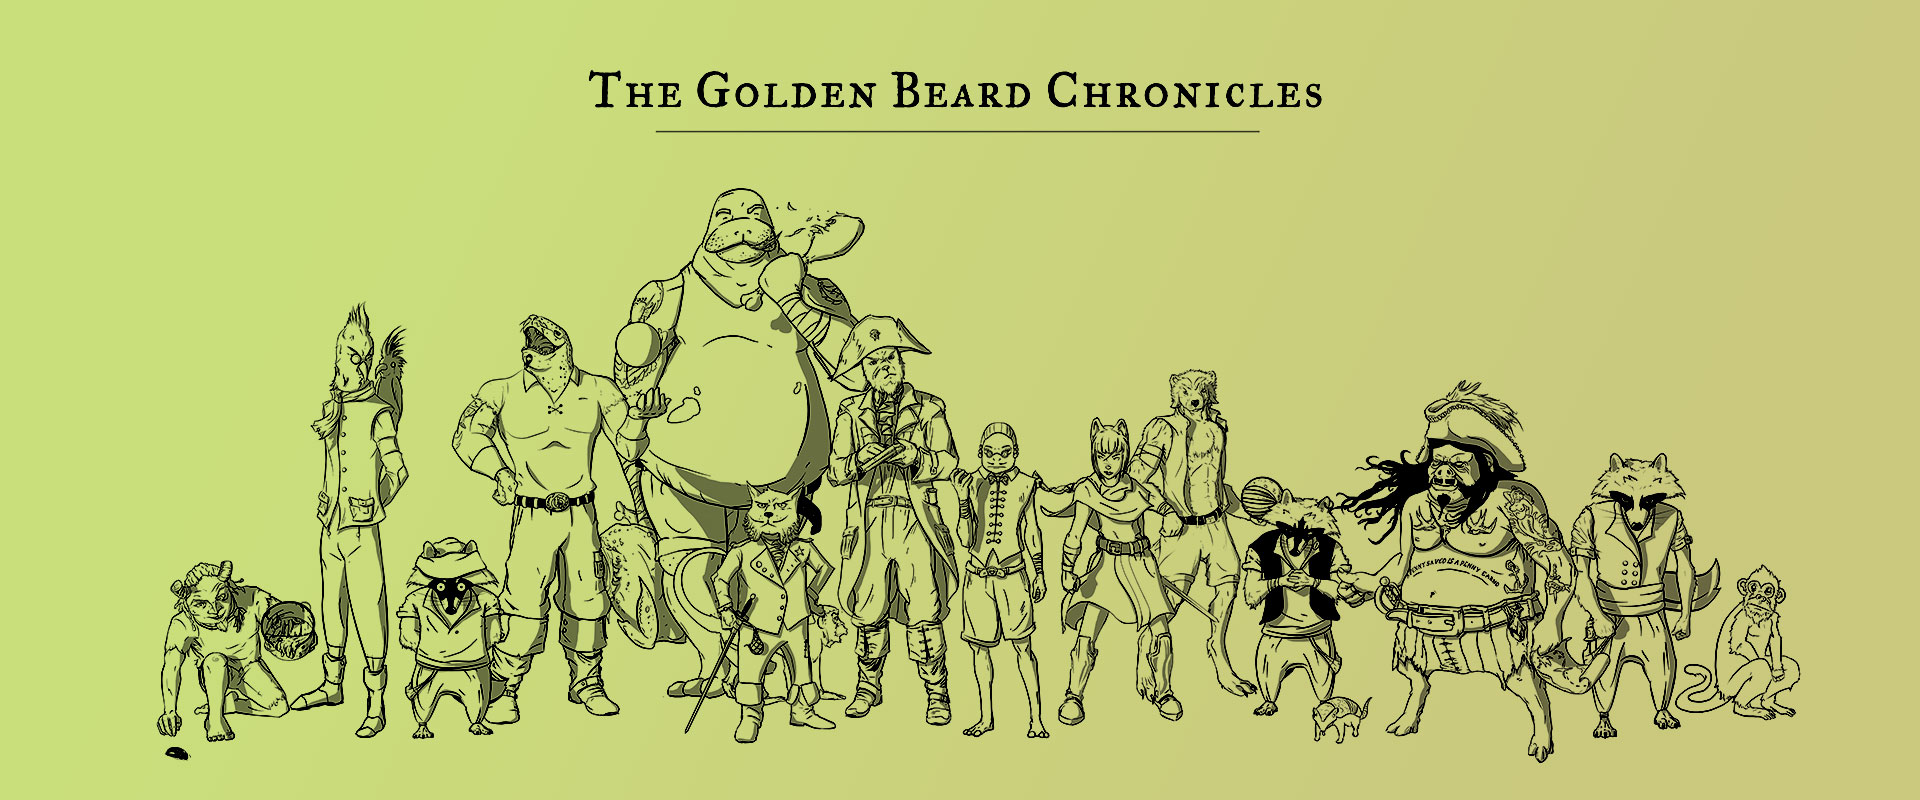 "Personnages de la bande dessinée interactive ""Golden Beard Chronicles"""